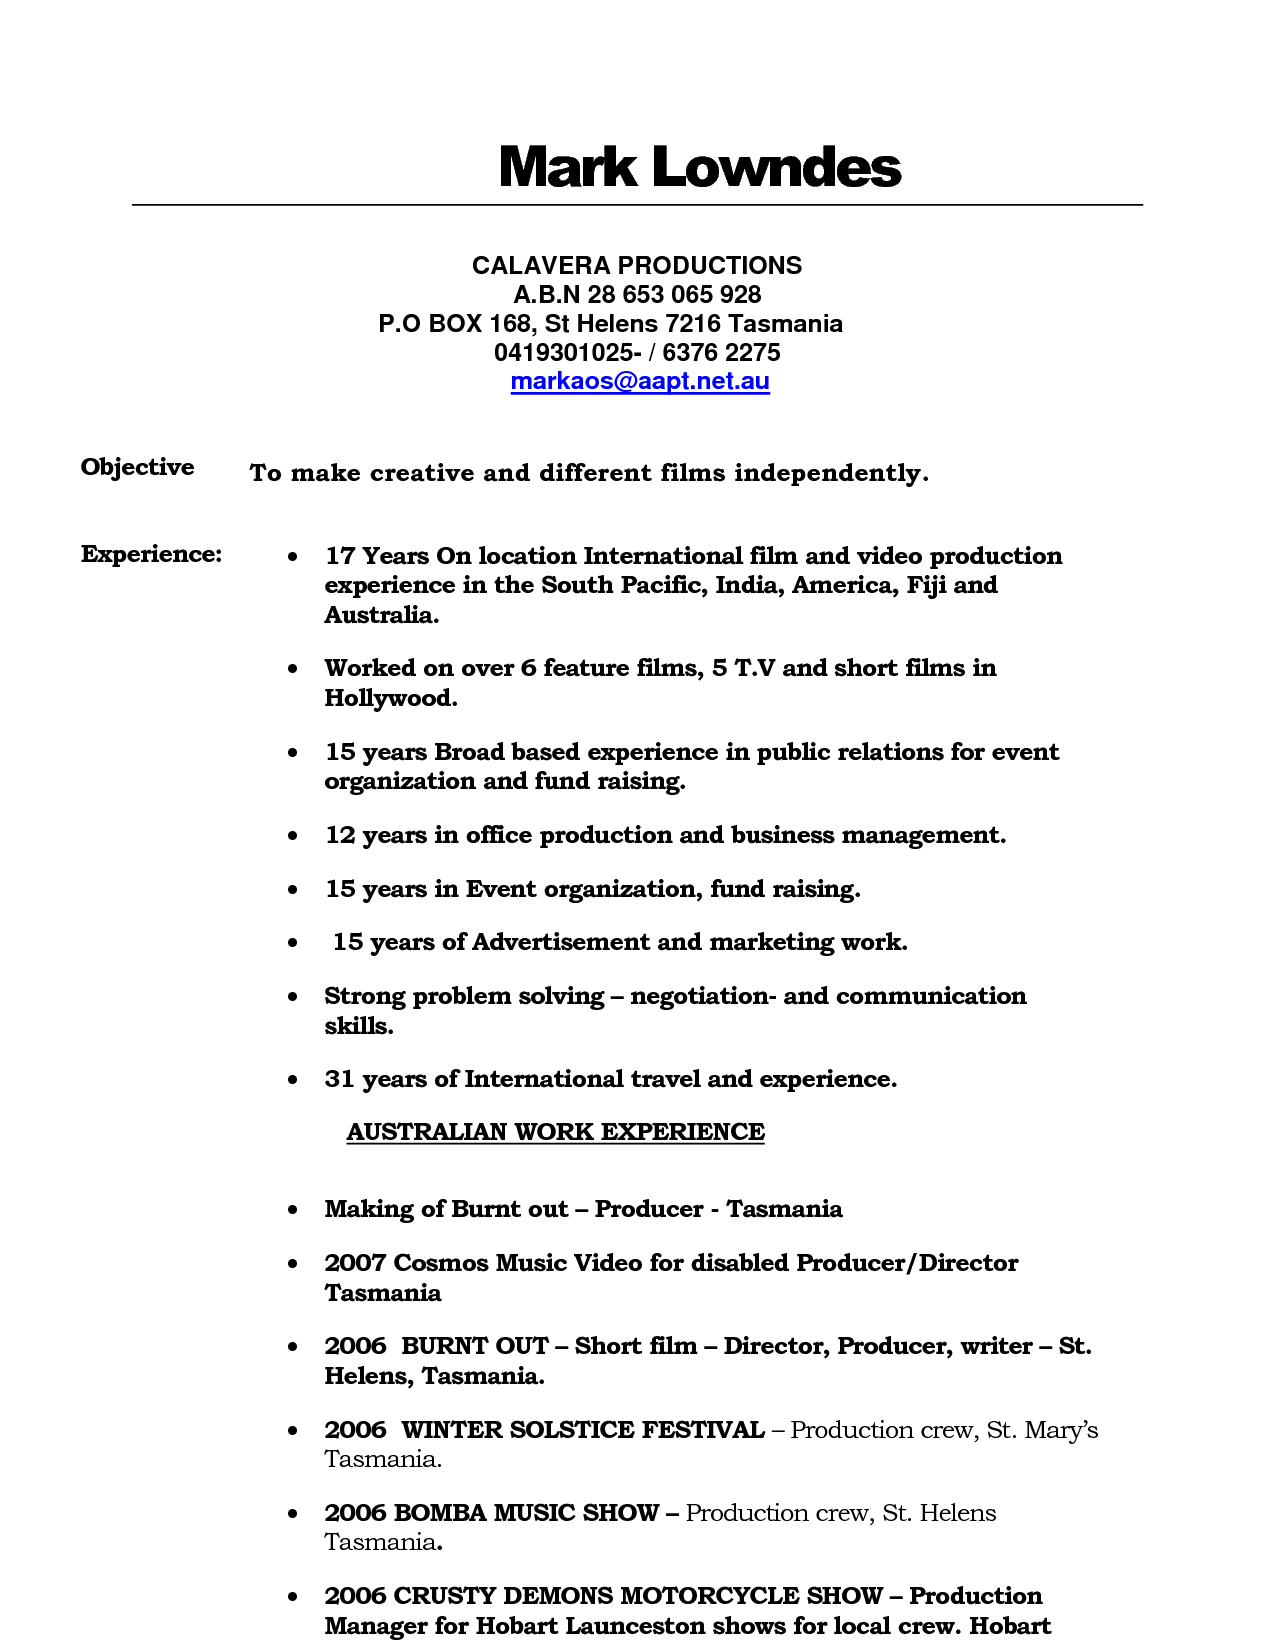 Resume For Uk Job